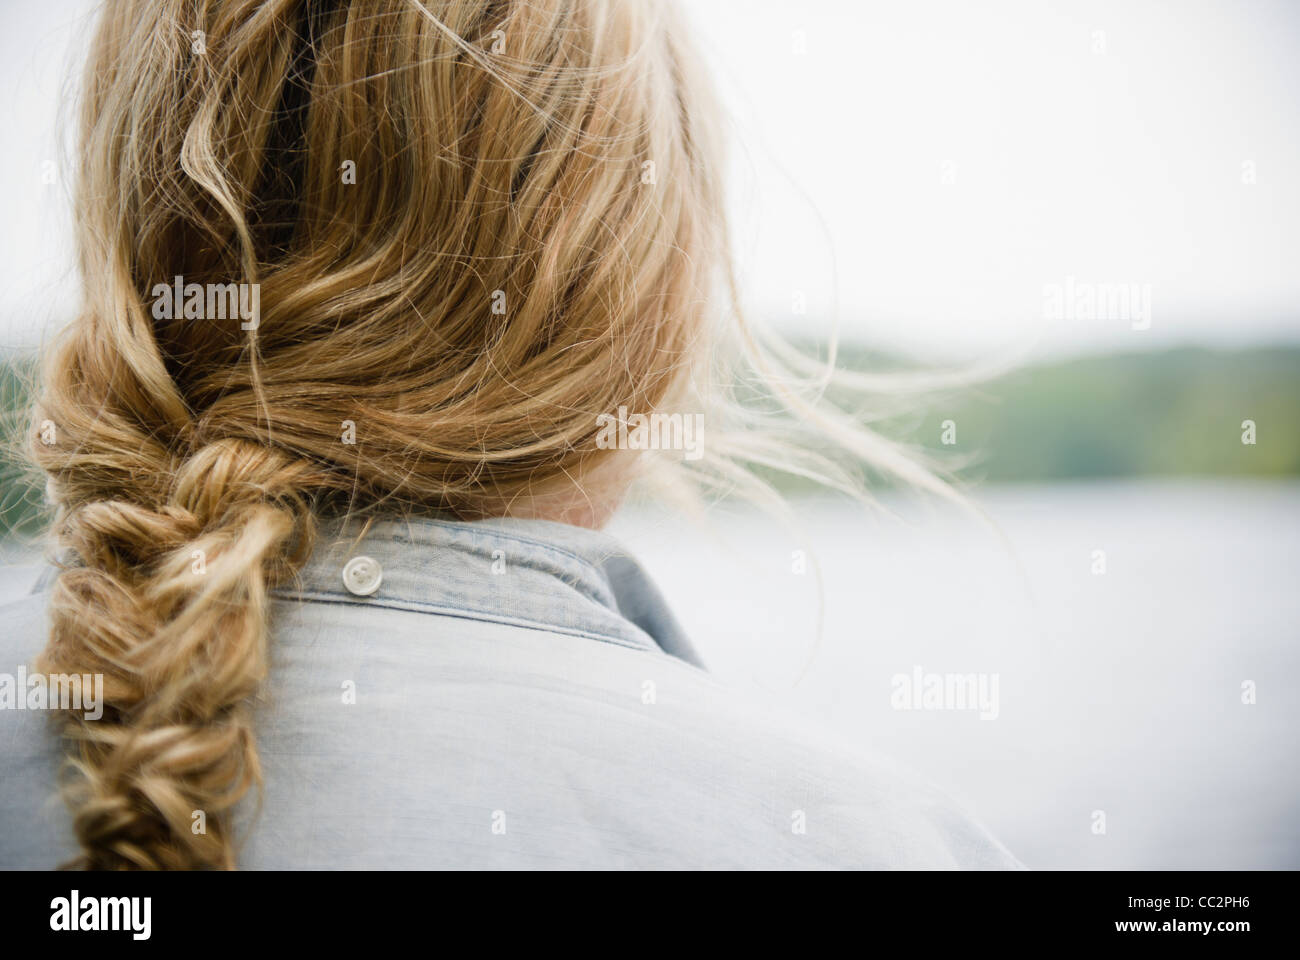 USA, New York, Putnam Valley, Roaring Brook Lake, Close up of woman's blond and braided hair - Stock Image